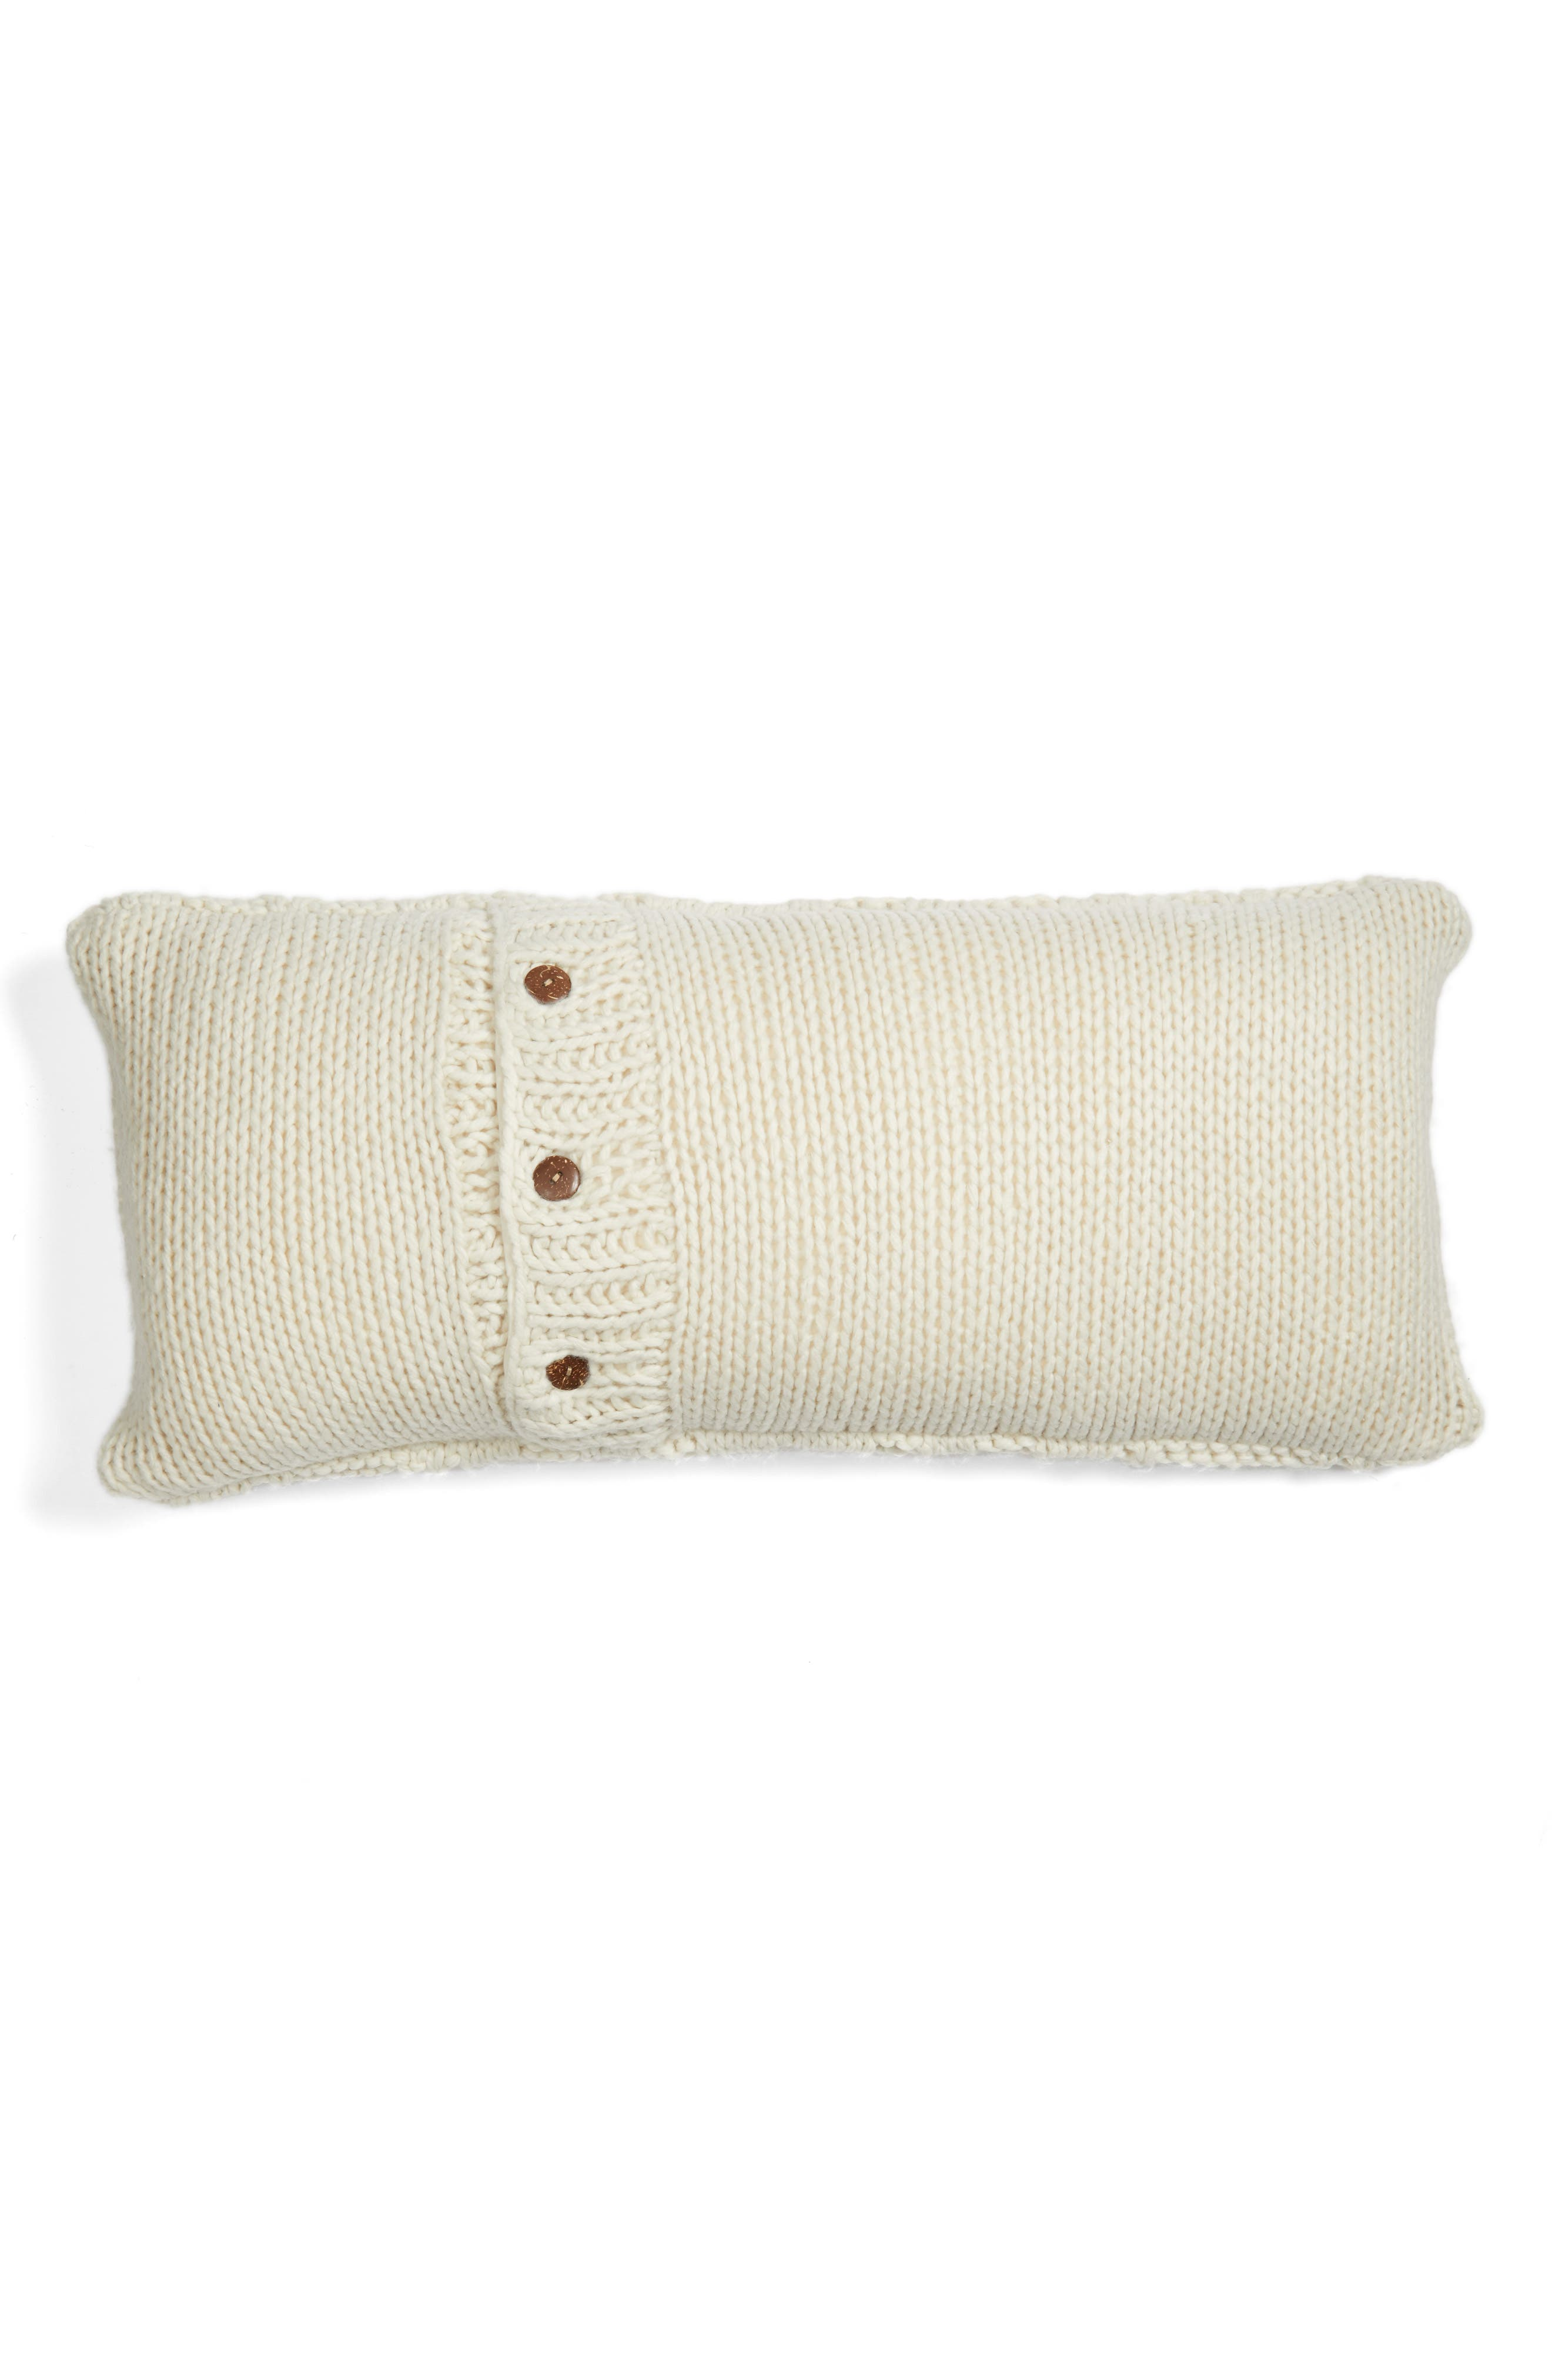 Cable Knit Accent Pillow,                         Main,                         color, Ivory Dove